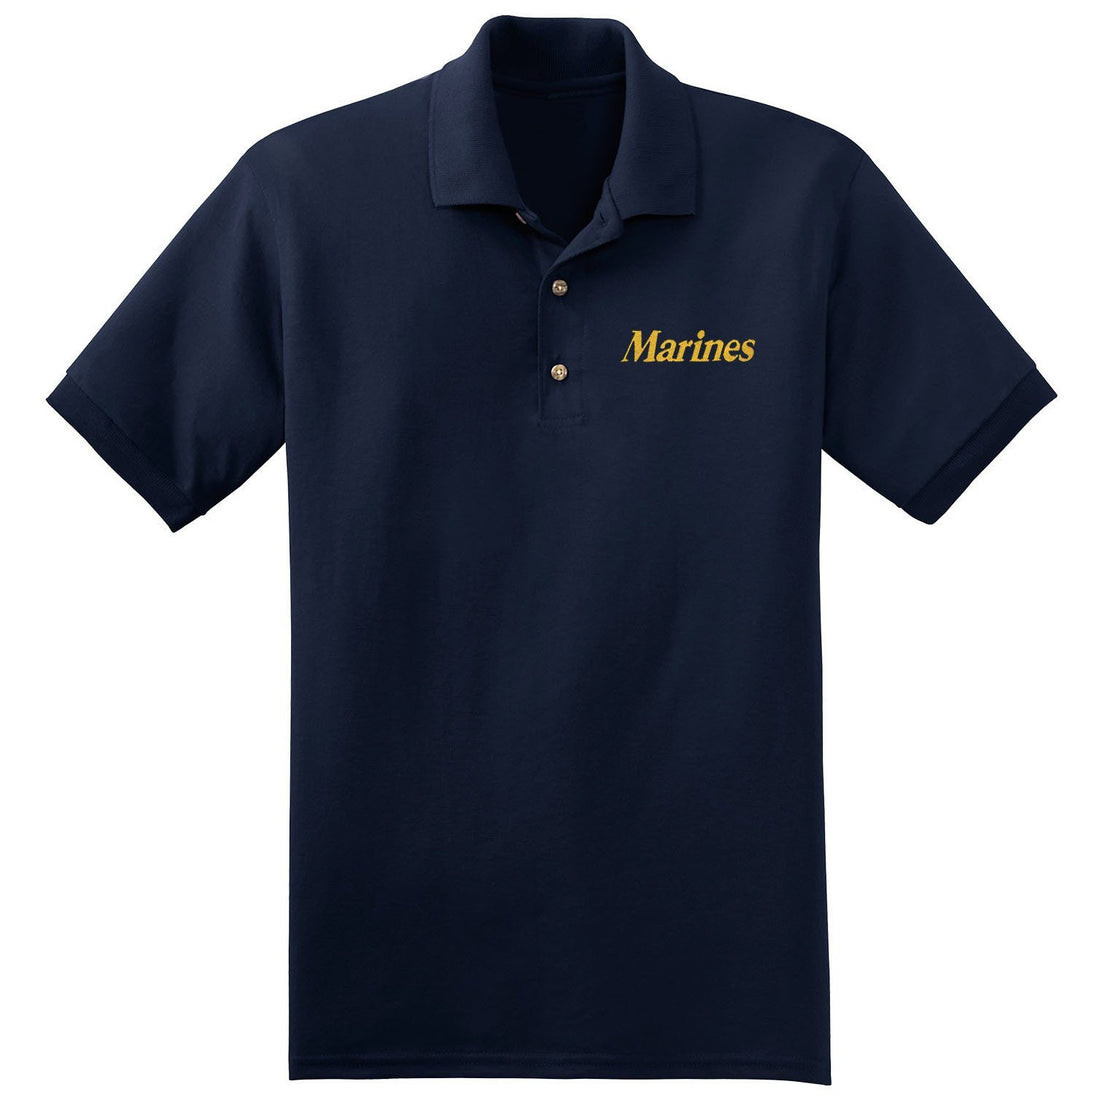 Marine Embroidered Polo (MULTIPLE COLORS) - Marine Corps Direct  - 5